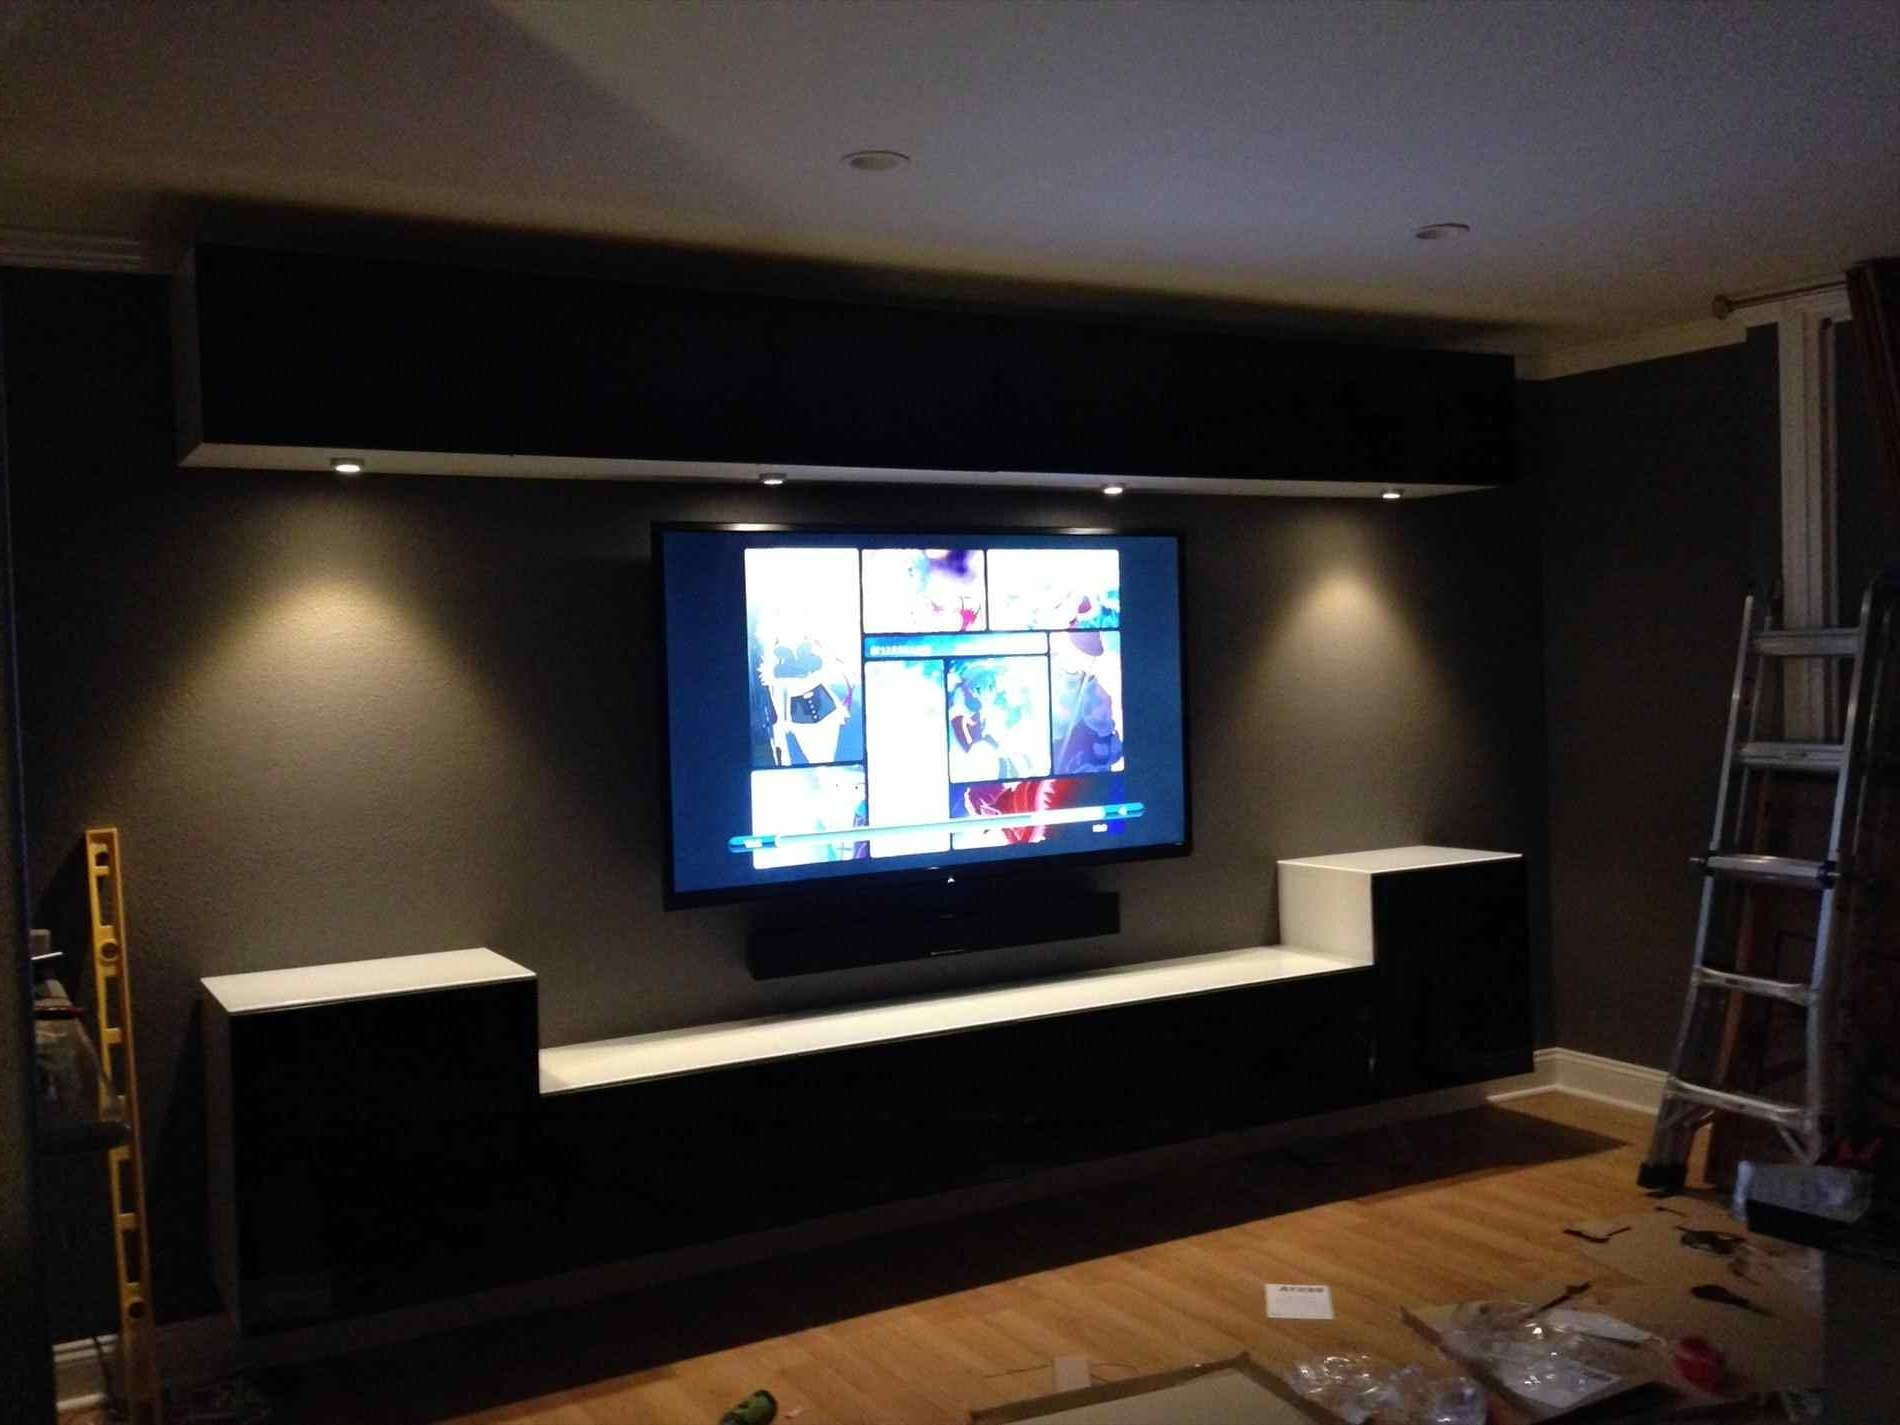 Cabinet : Back Panel Lack Unit Pe S Jpg Table For Under Ed U Media Within Wall Mounted Tv Cabinets Ikea (View 11 of 20)